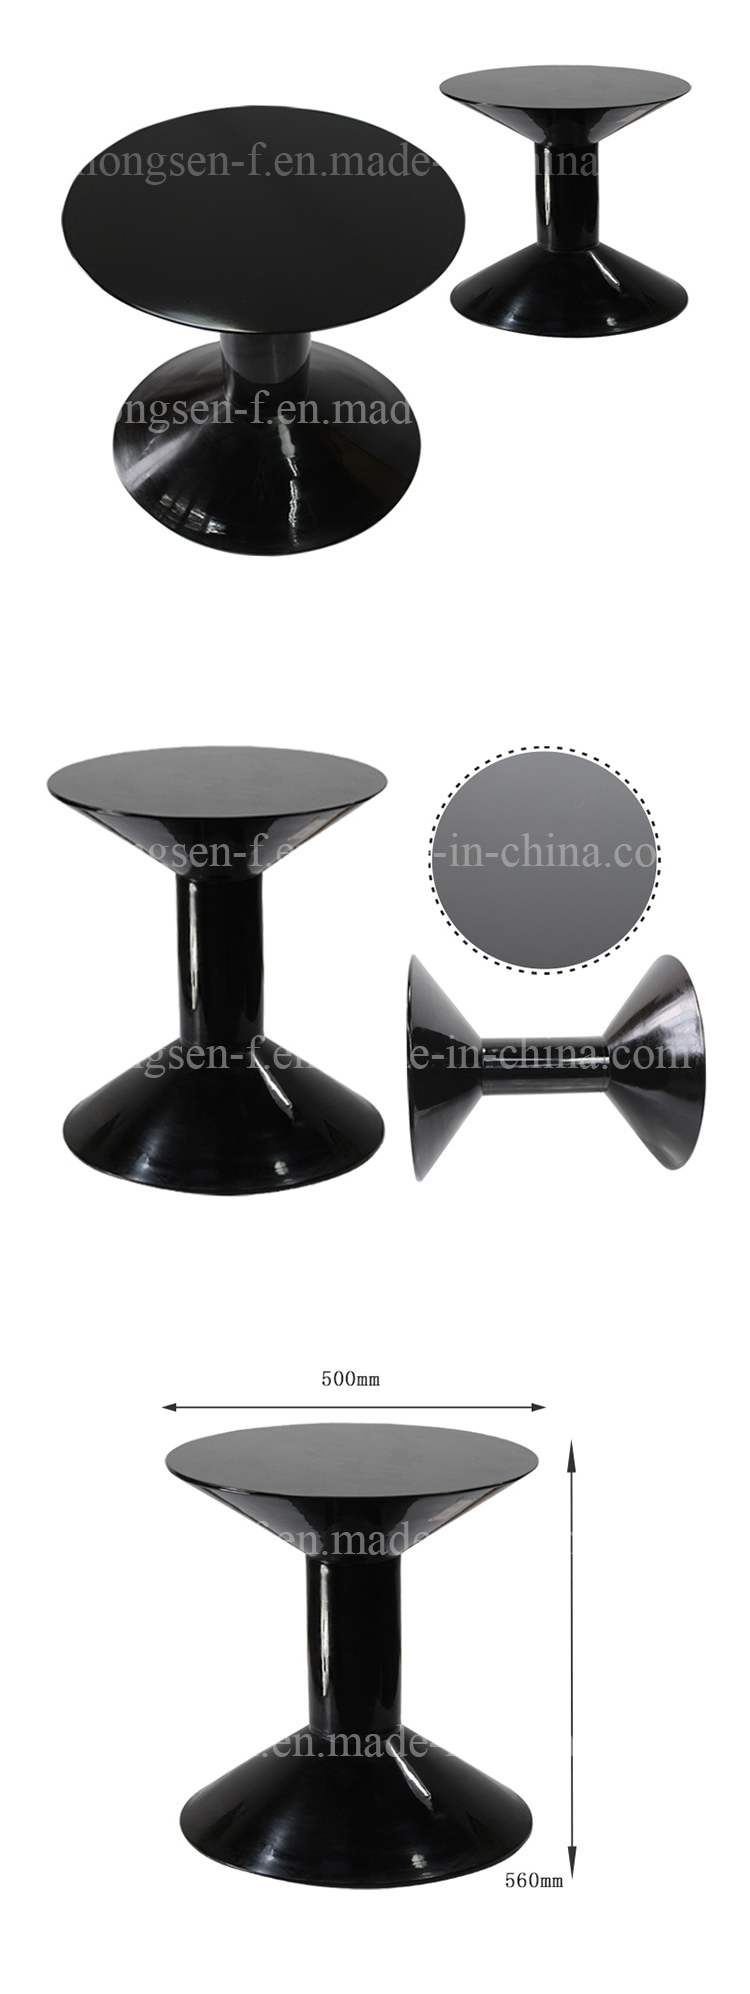 Modern Style Black Round Glass Coffee Table Design for Hotel